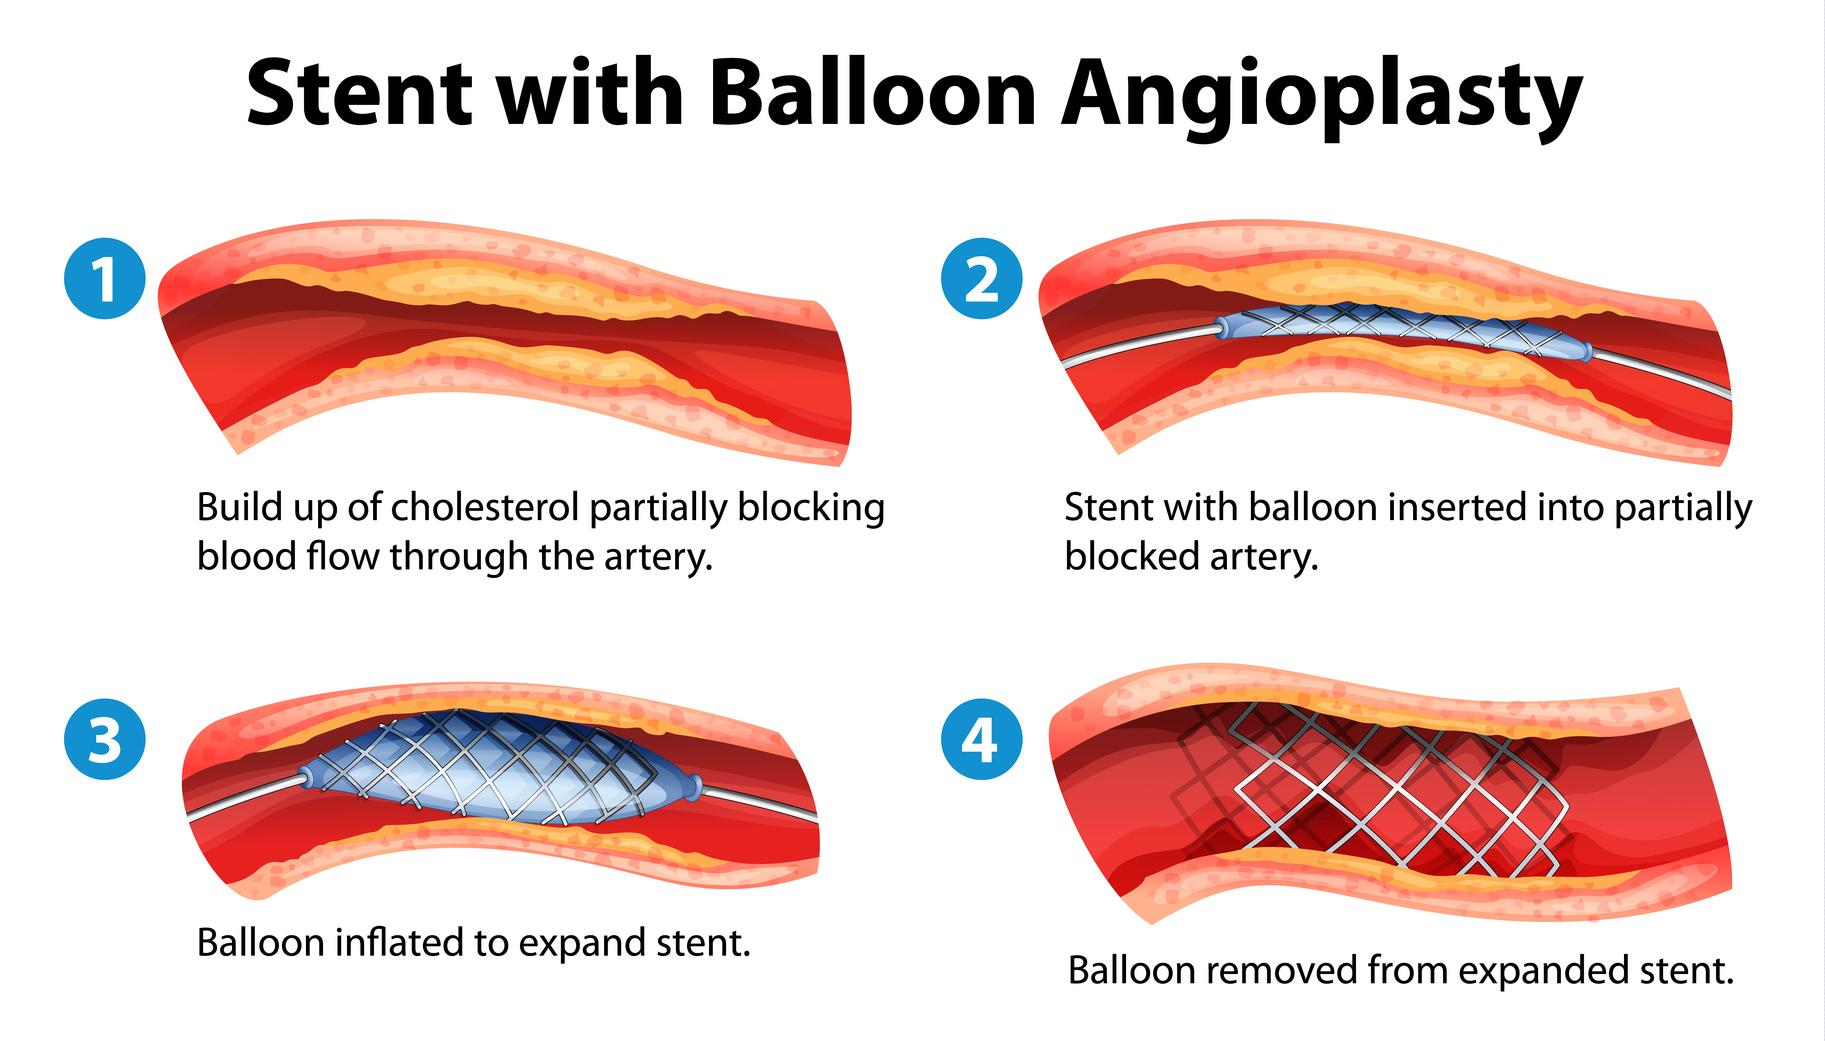 Balloon Angioplasty and Stent Placement